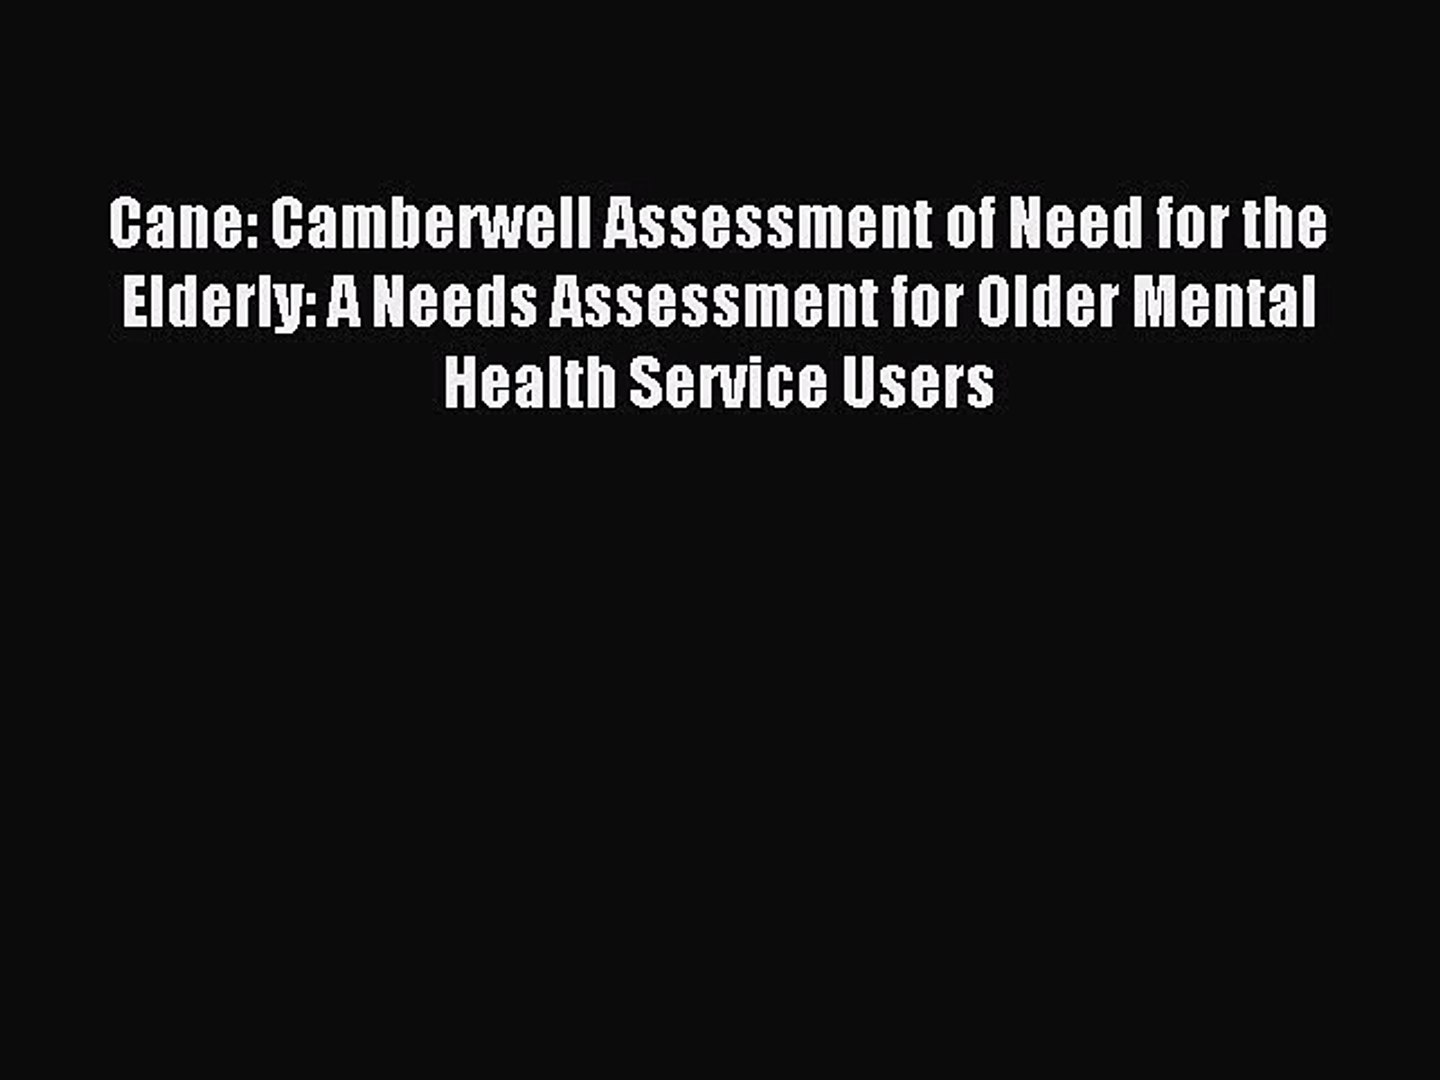 Pdf Download Cane Camberwell Assessment Of Need For The Elderly A Needs Assessment For Video Dailymotion